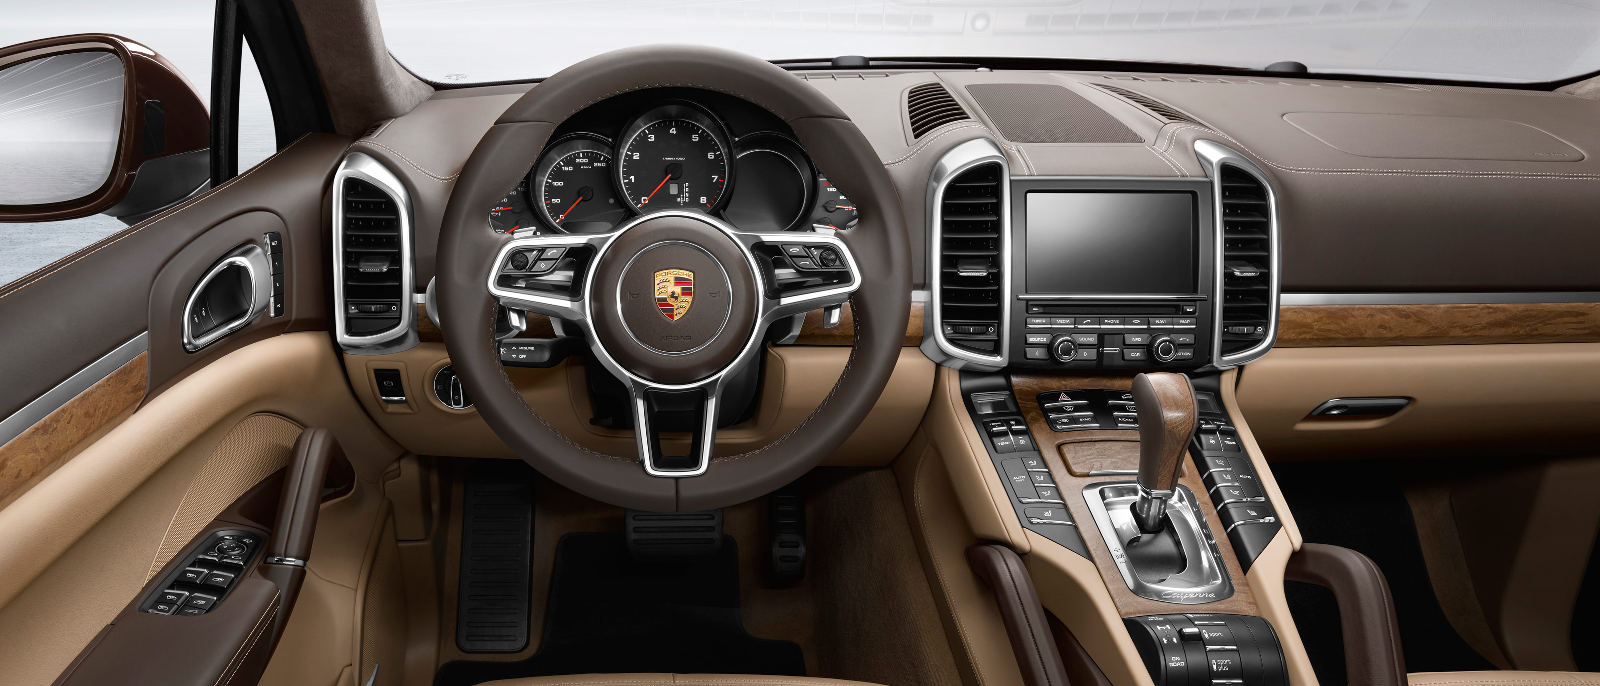 2015 porsche cayenne s model info porsche orland park. Black Bedroom Furniture Sets. Home Design Ideas